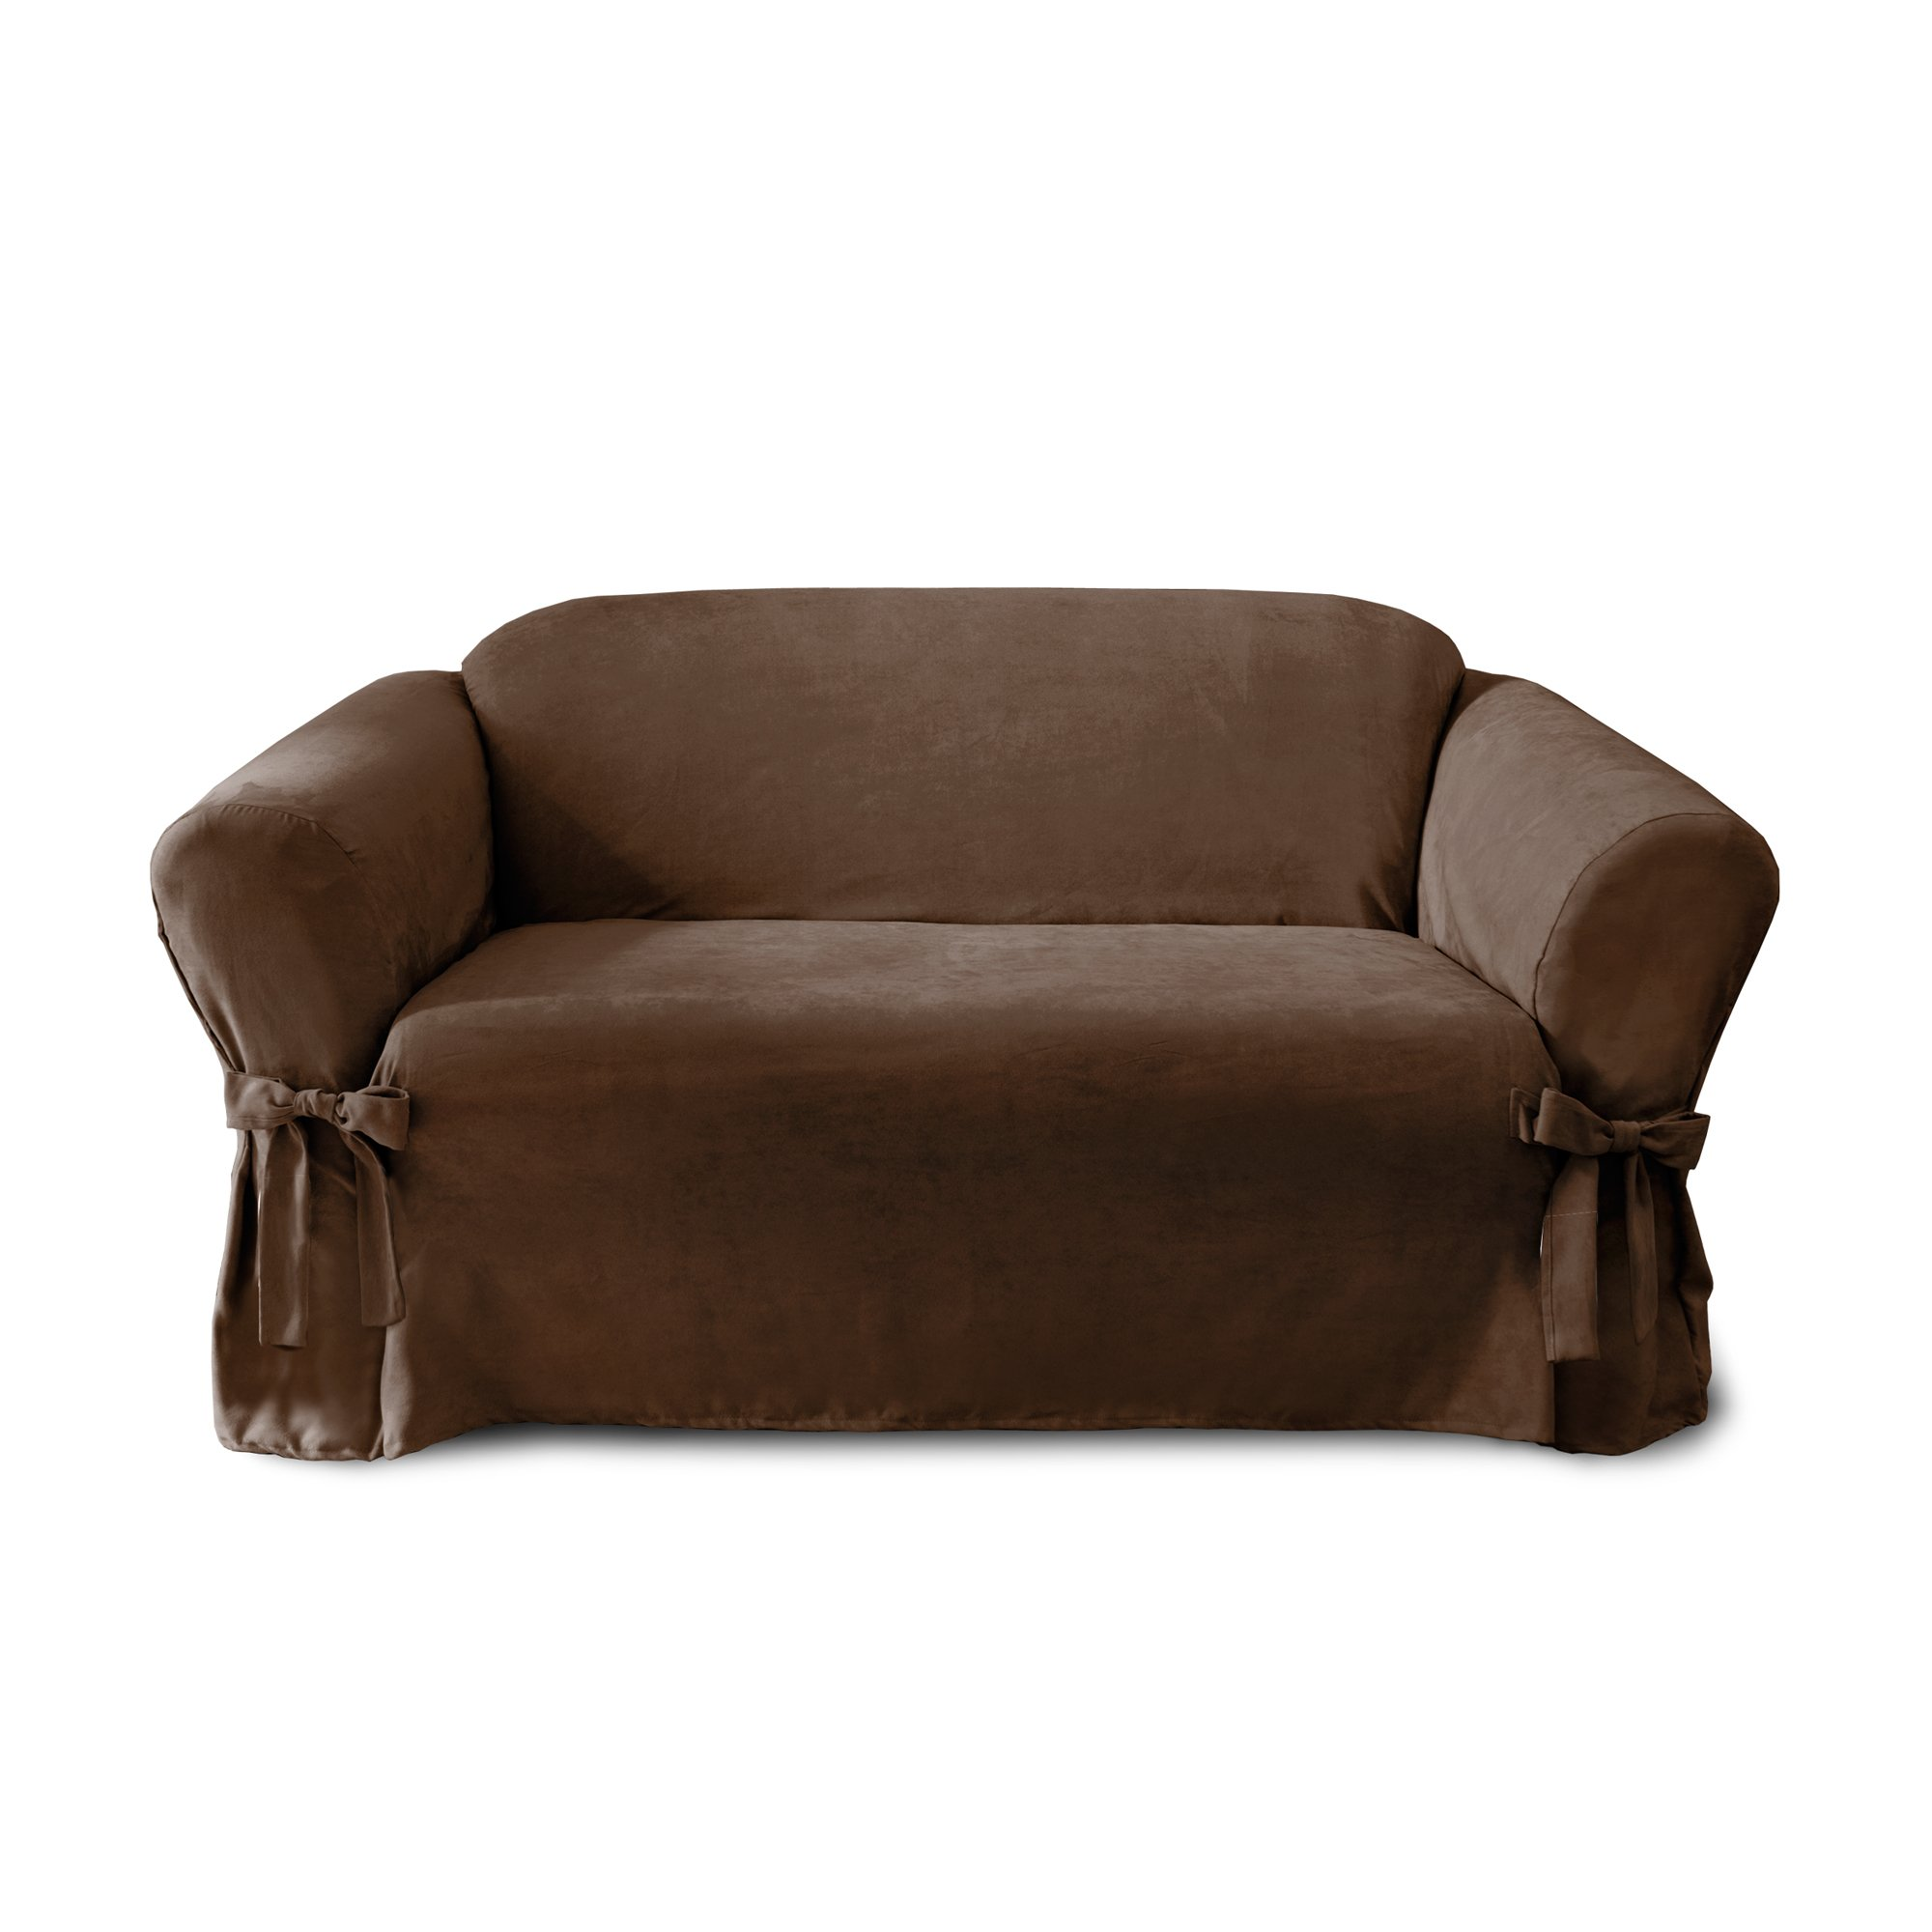 CoverWorks SIENLOVECHOC1 Sienna Relaxed Fit Loveseat Slipcover, Chocolate